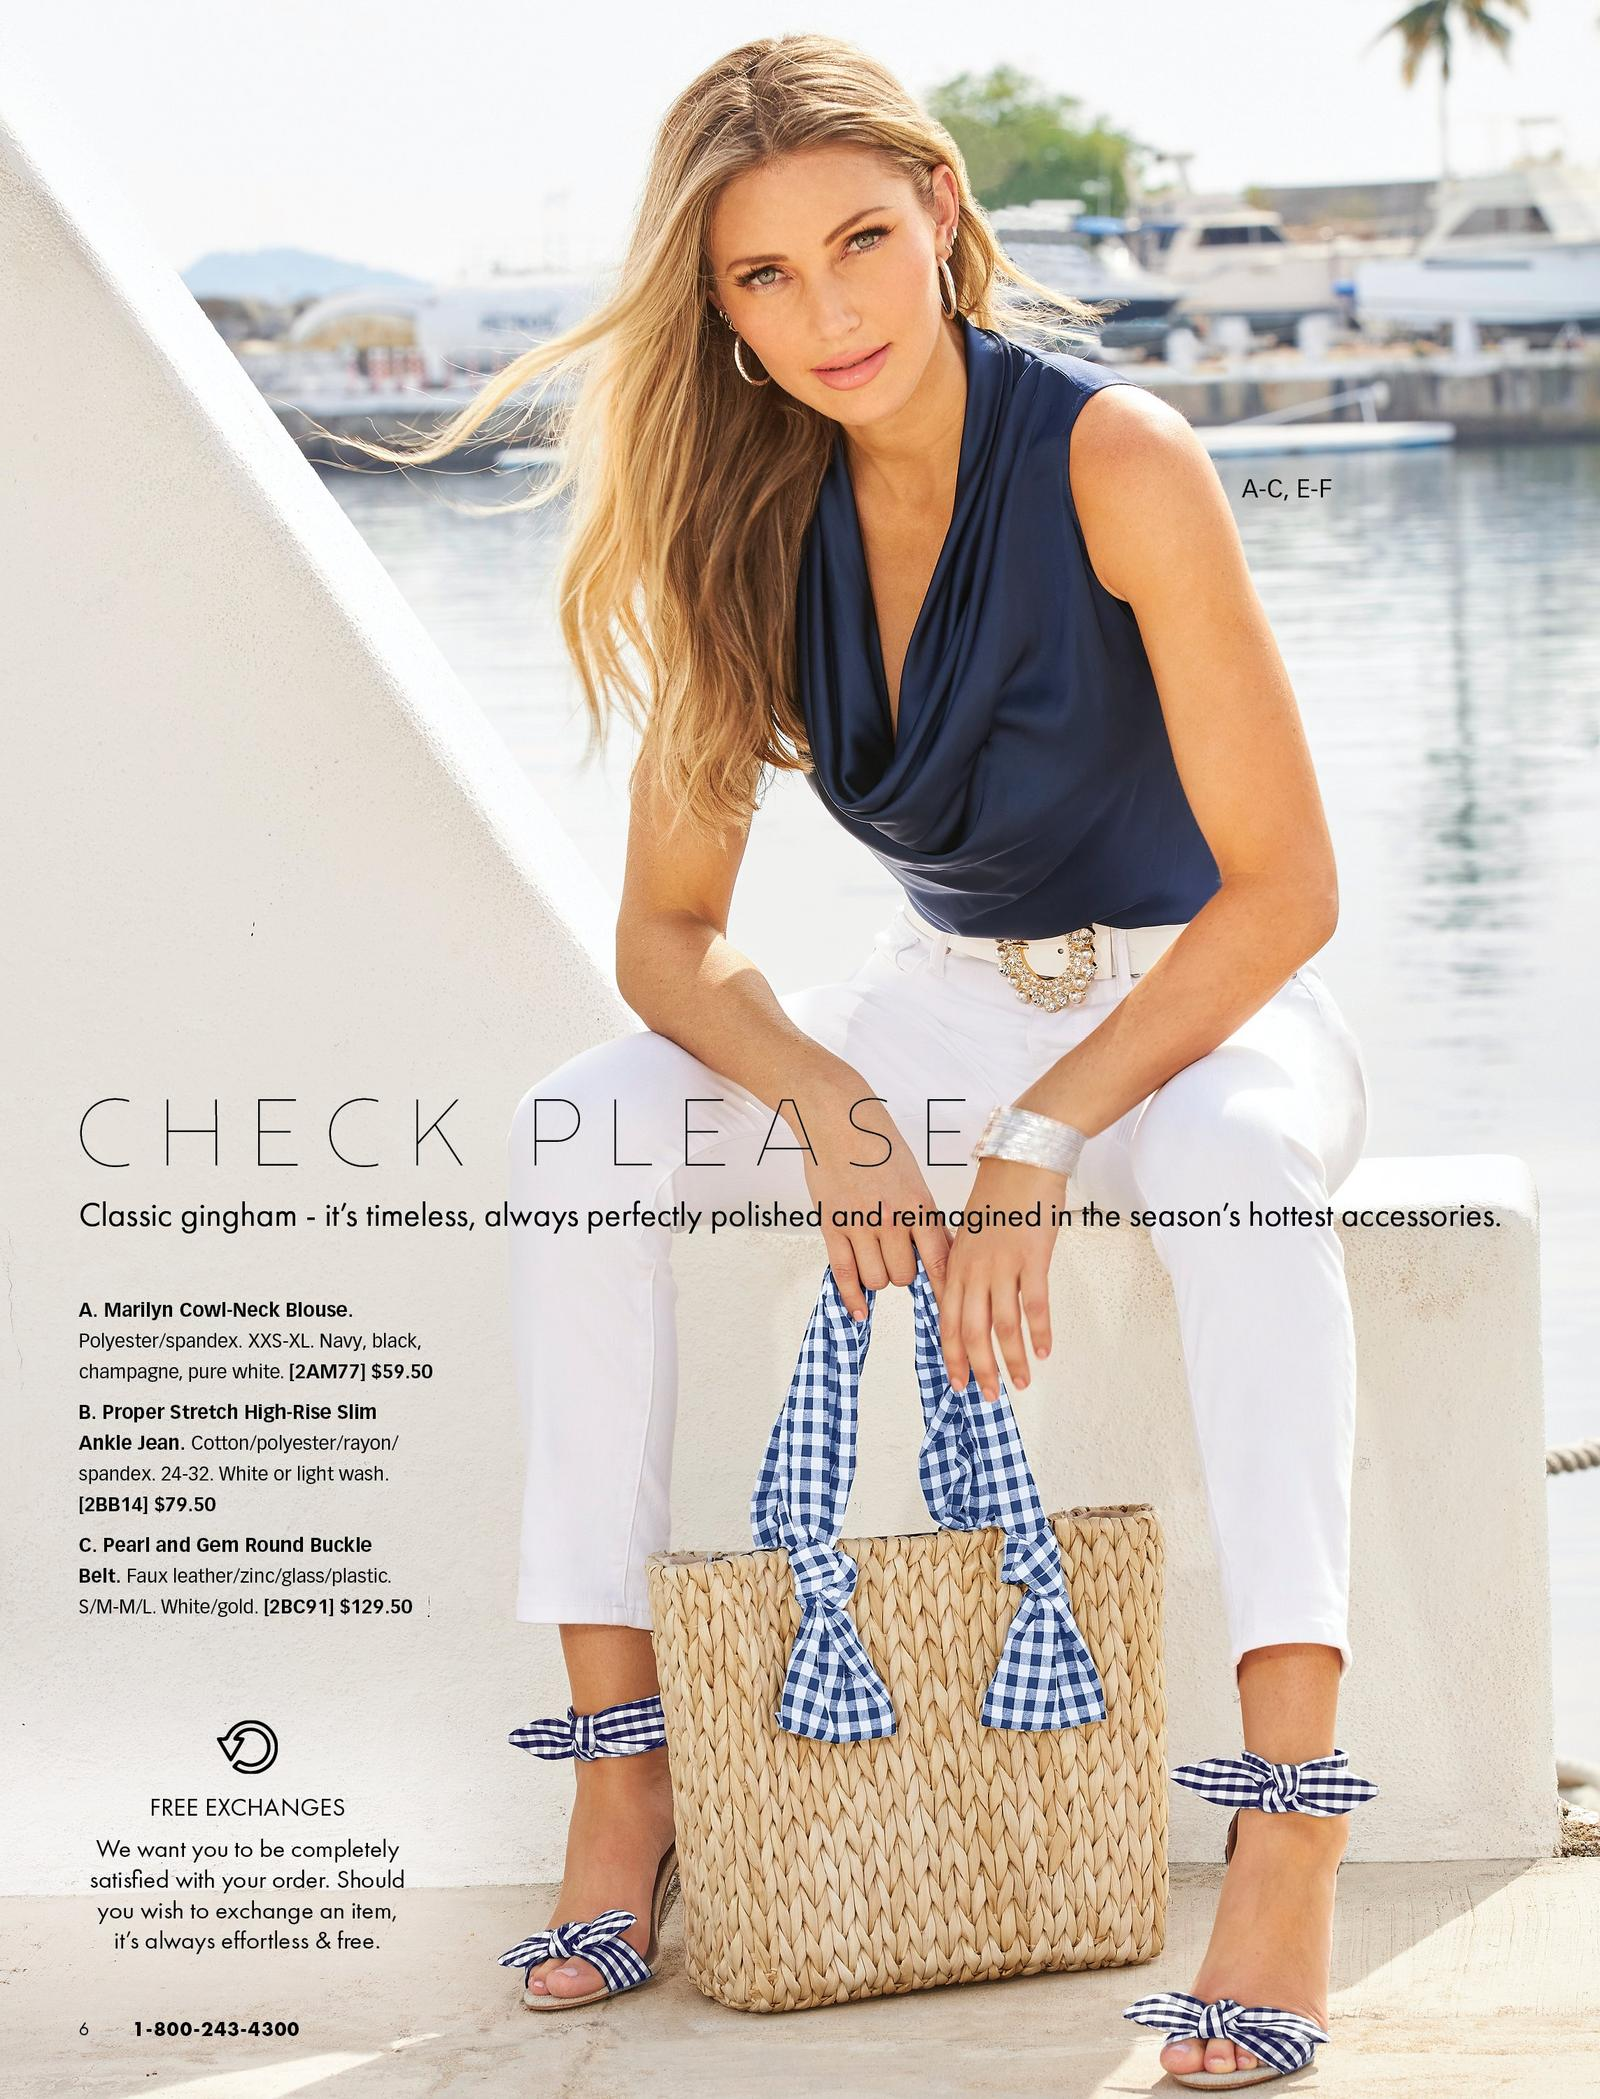 model wearing a navy sleeveless cowl neck top, white jeweled belt, white jeans, gingham bow heels, gold hoop earrings, and holding a straw bag with a gingham ribbon handle.